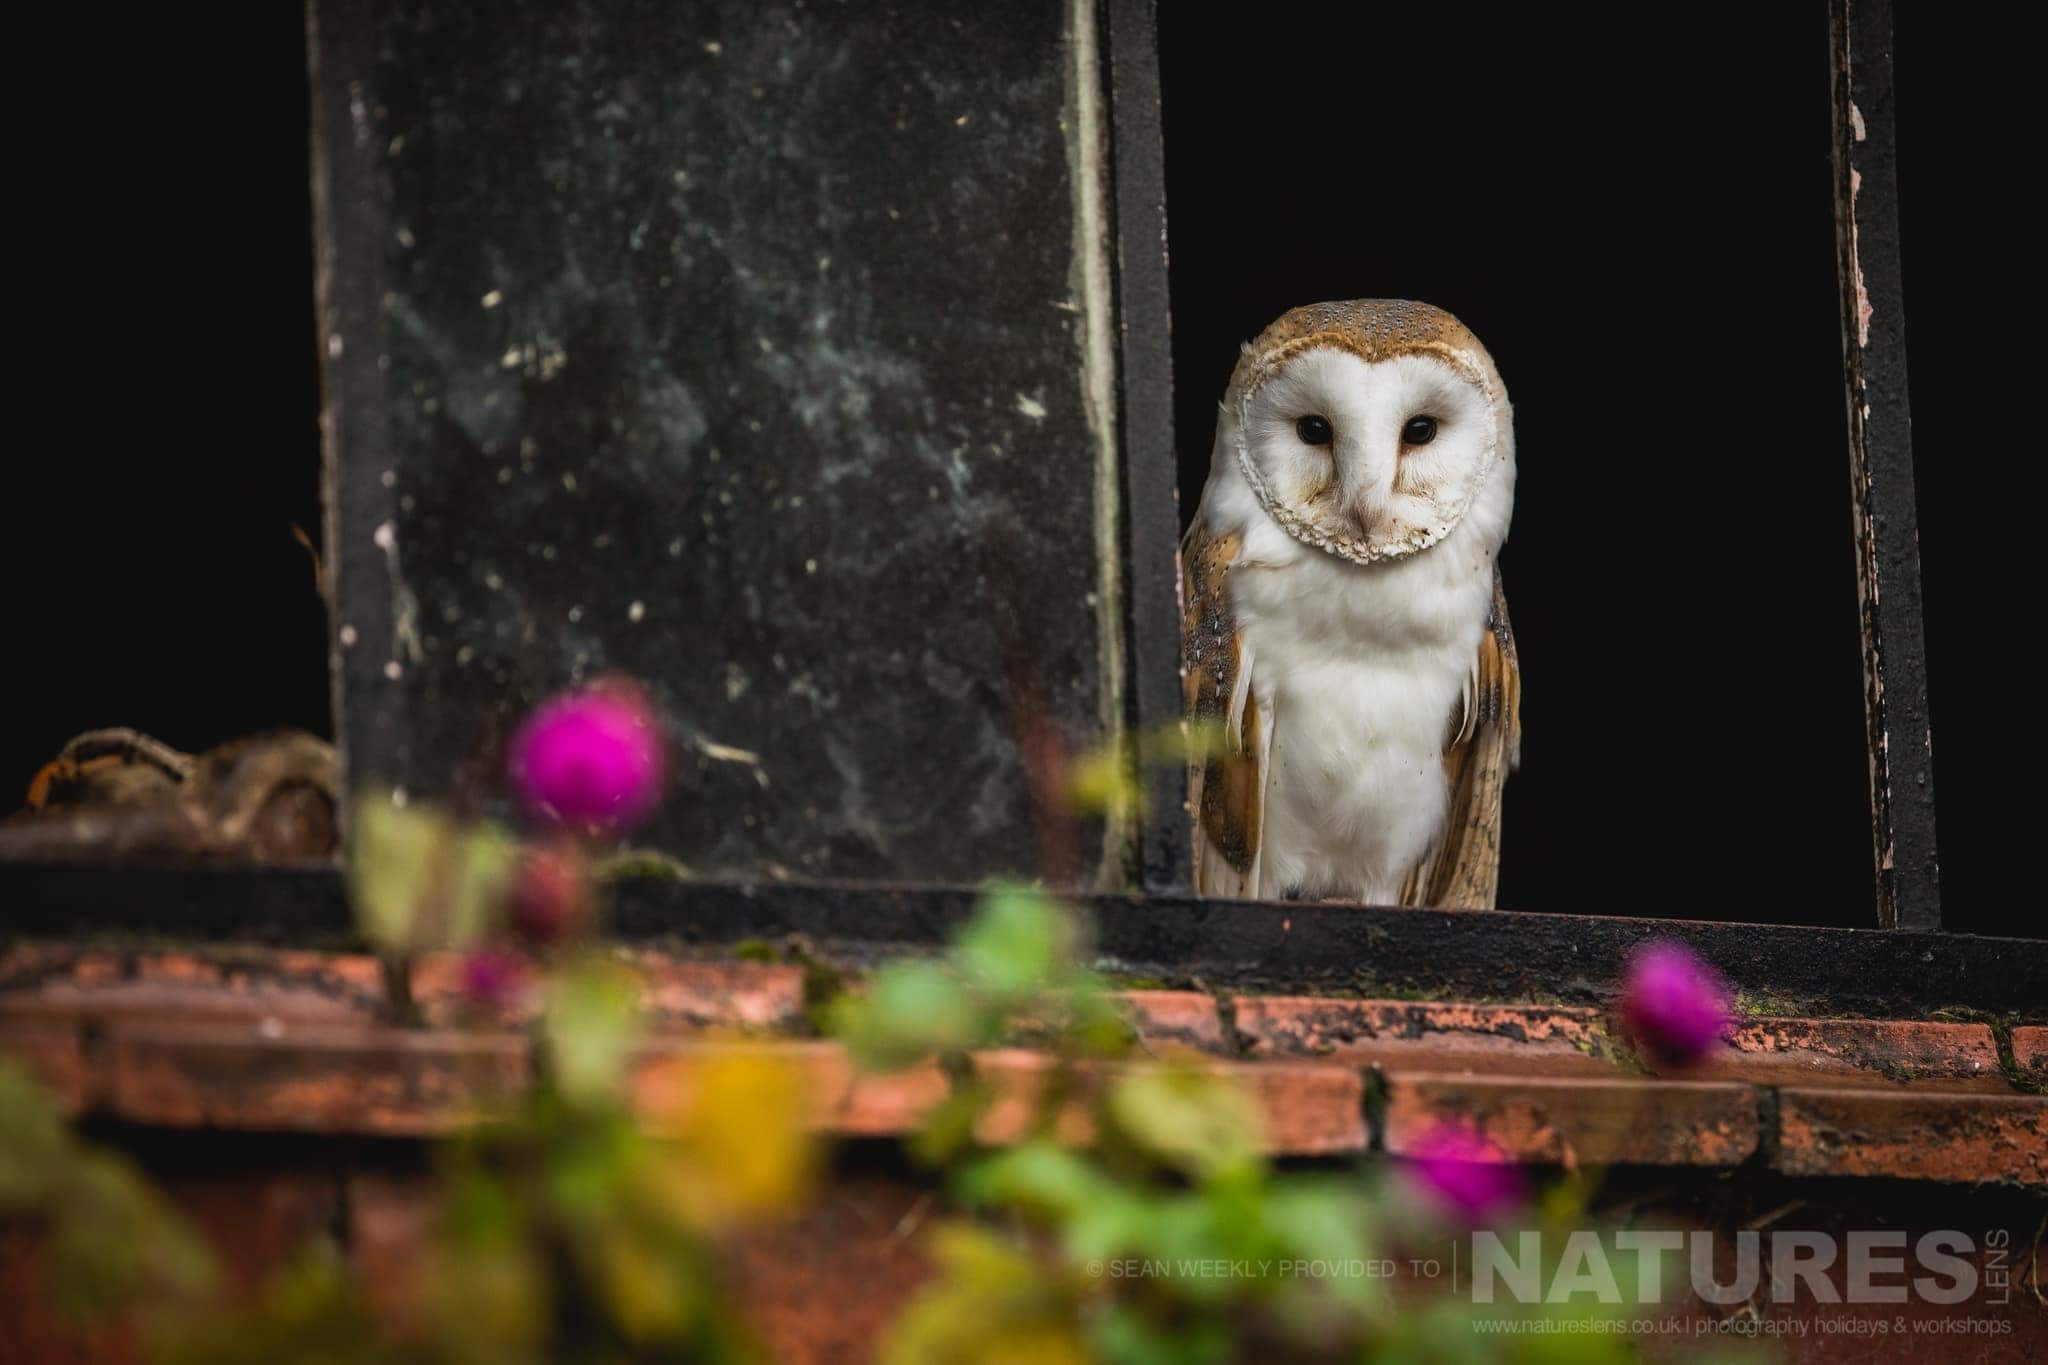 A Barn Owl In A Farm Outbuilding   An Example Of The Type Of Image That You Will Have Opportunities To Capture During The NaturesLens Welsh Birds Of Prey Photography Workshop